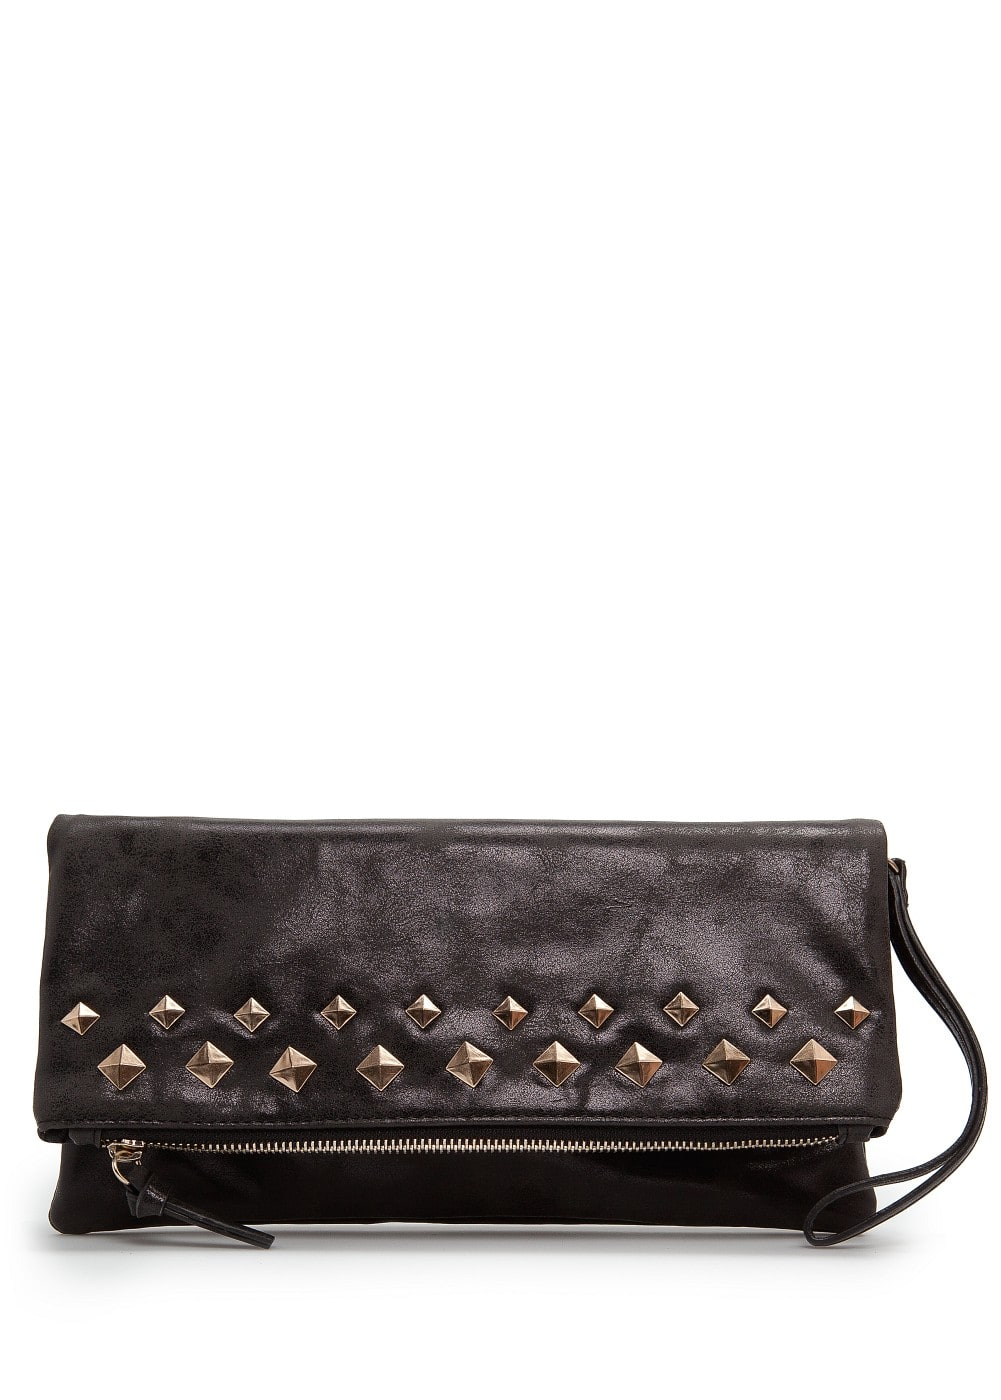 Studded metallic clutch